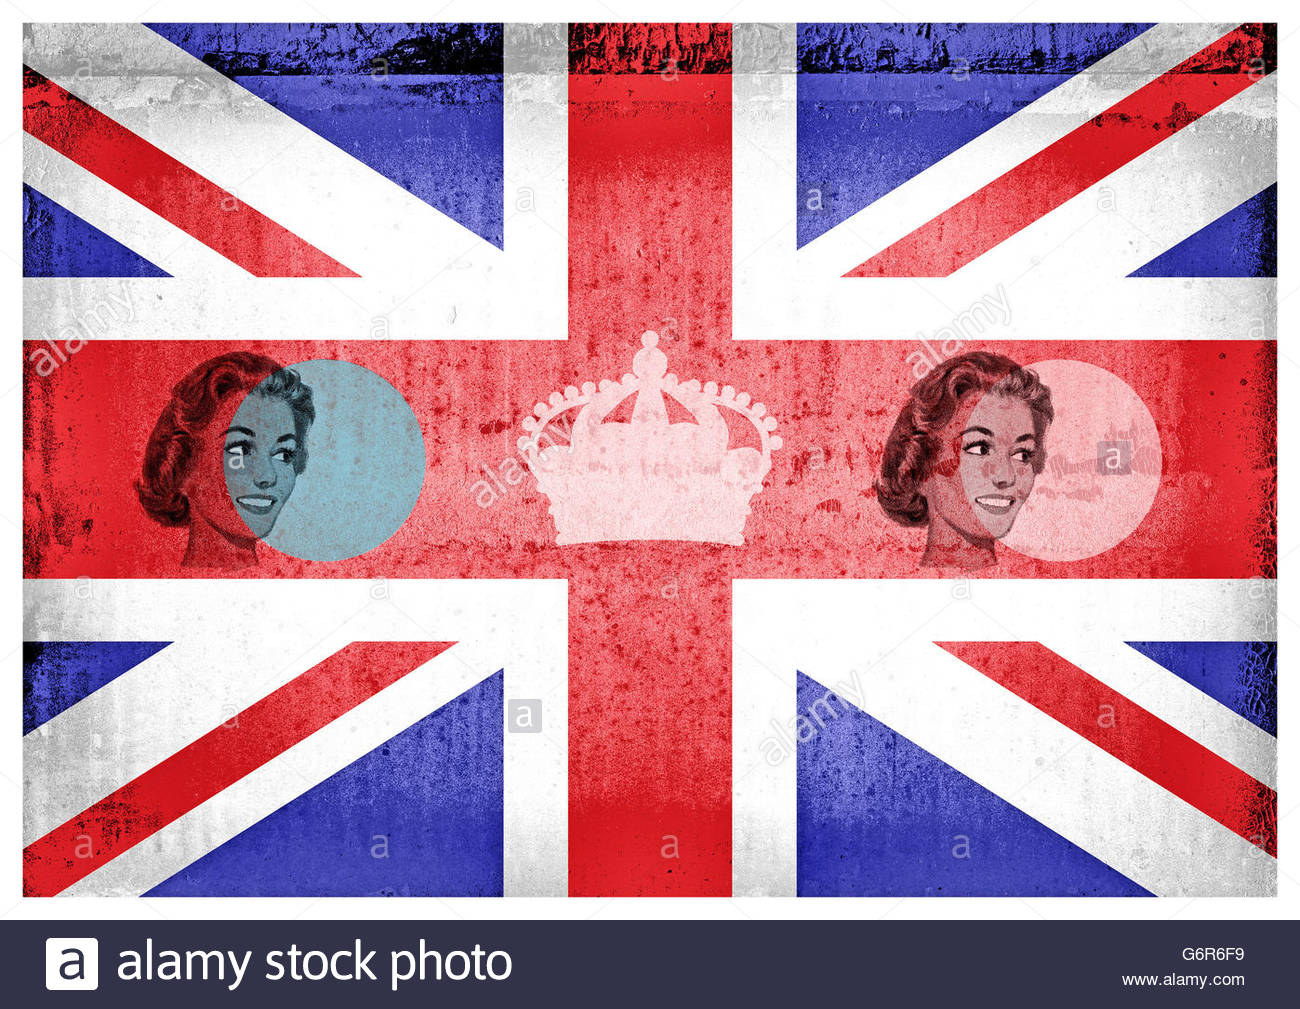 Retro fifties patriotic union jack housewife mid century illustration - Stock Image